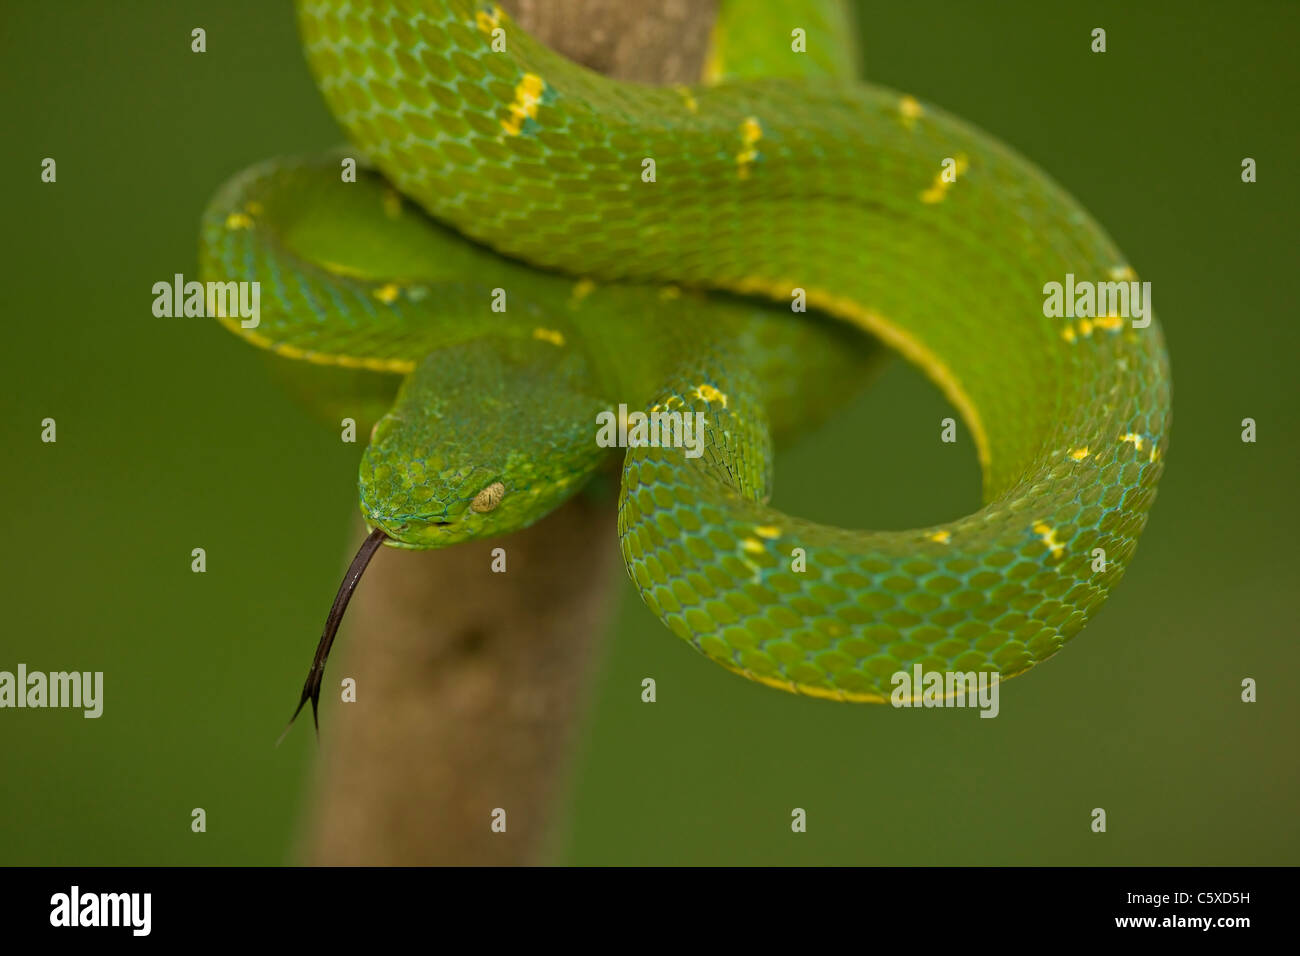 Side-striped Palm-pit viper (Bothriechis lateralis) - Costa Rica - Arboreal - Venomous - Captive - Stock Image